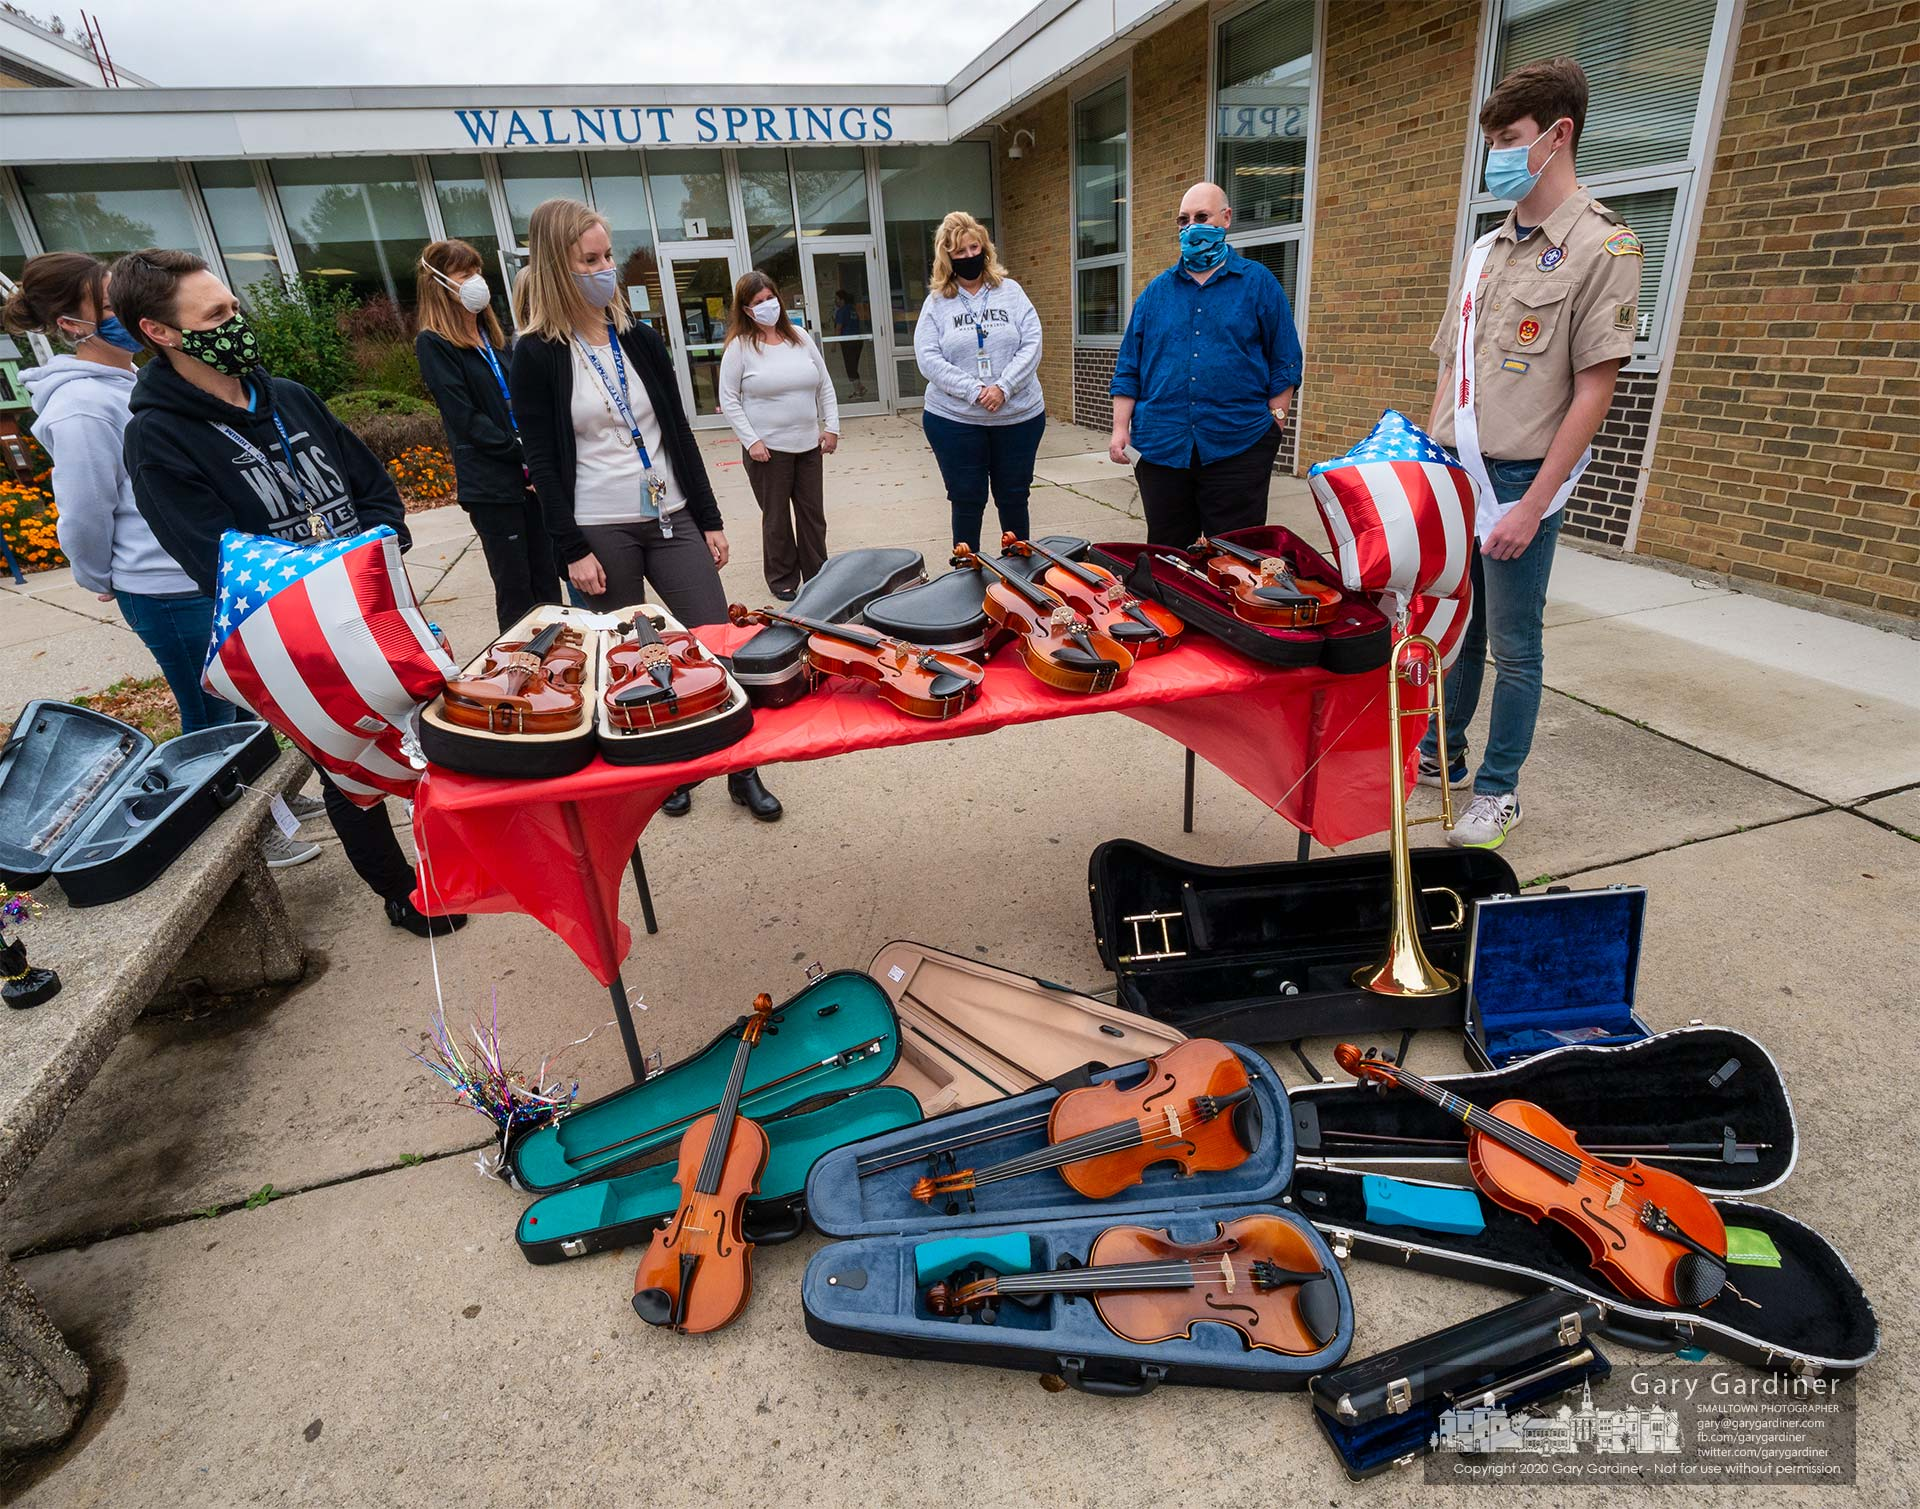 Alex Hendrick, right, is greeted by teachers and staff at Walnut Springs Middle School where he donated 13 musical instruments to the school after he raised the money, purchased old instruments, and had them repaired as part of his Eagle Scout project. My Final Photo for Oct. 28, 2020.